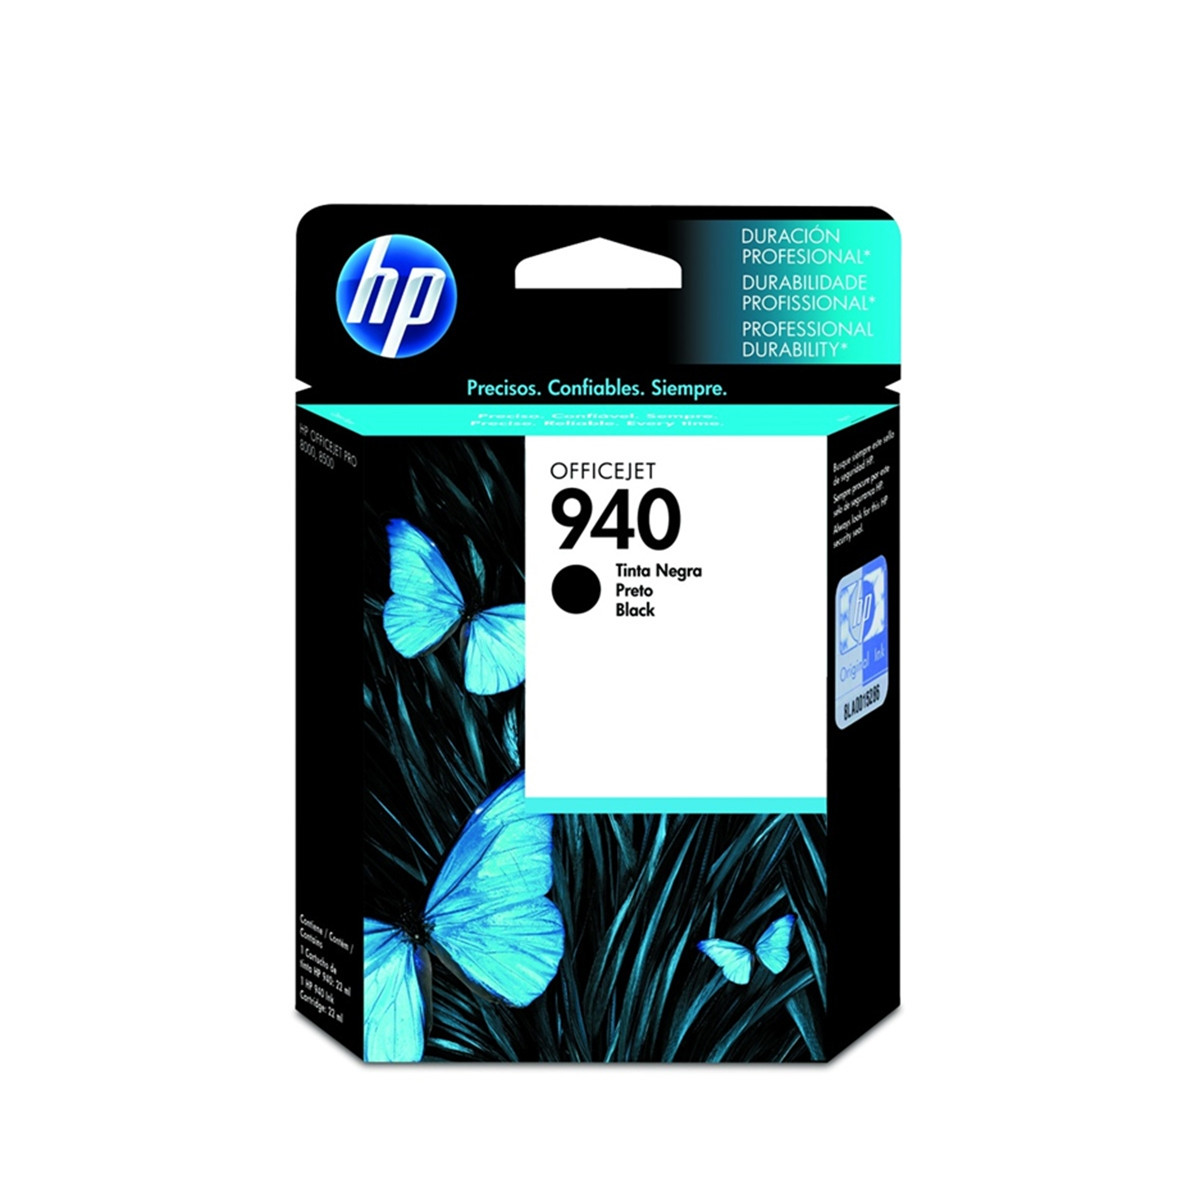 Cartucho de Tinta HP 940 | C4902AL | C4902AB Preto | Officejet 8000 8500 | Original 28 ml